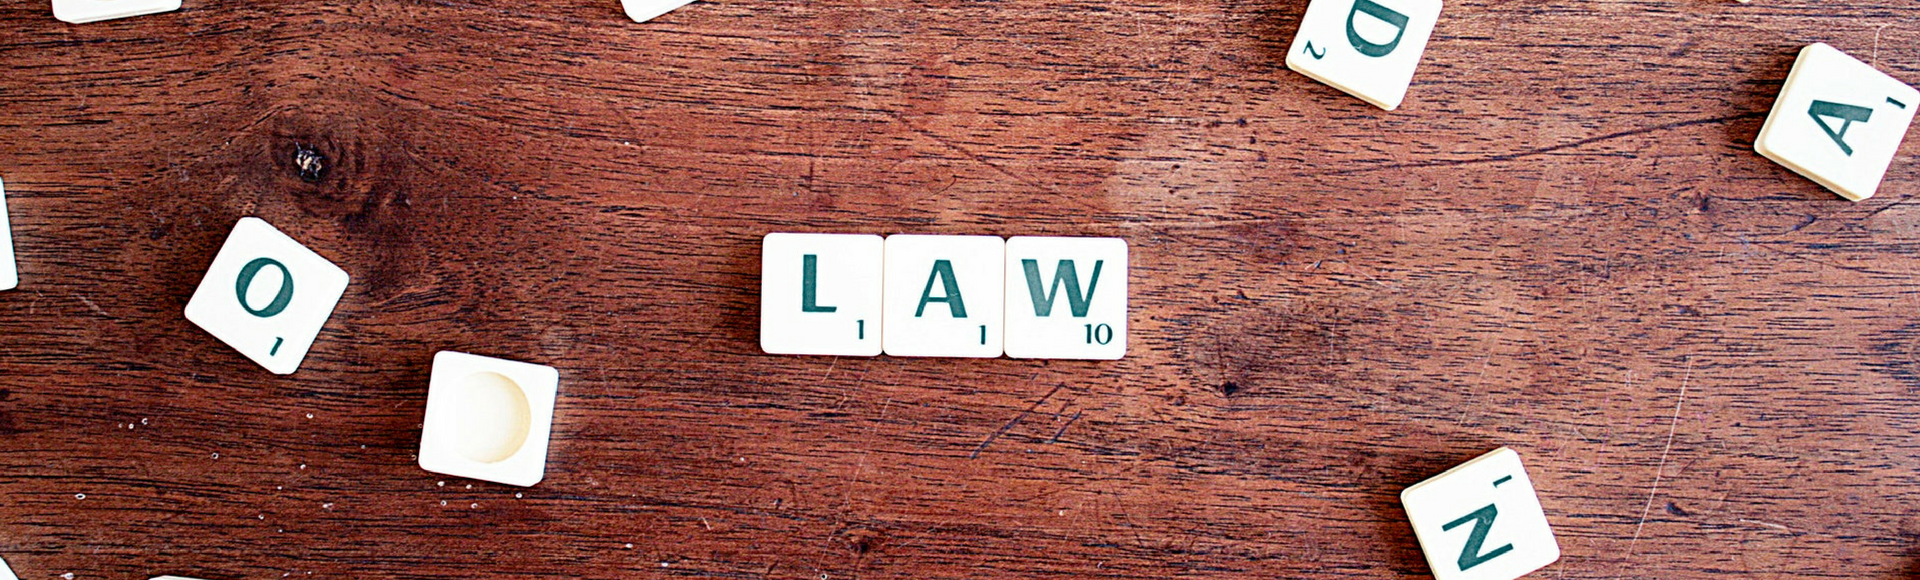 "Scrabble tired spell ""Law"" in reference to jury duty pay requirements employers need to know."